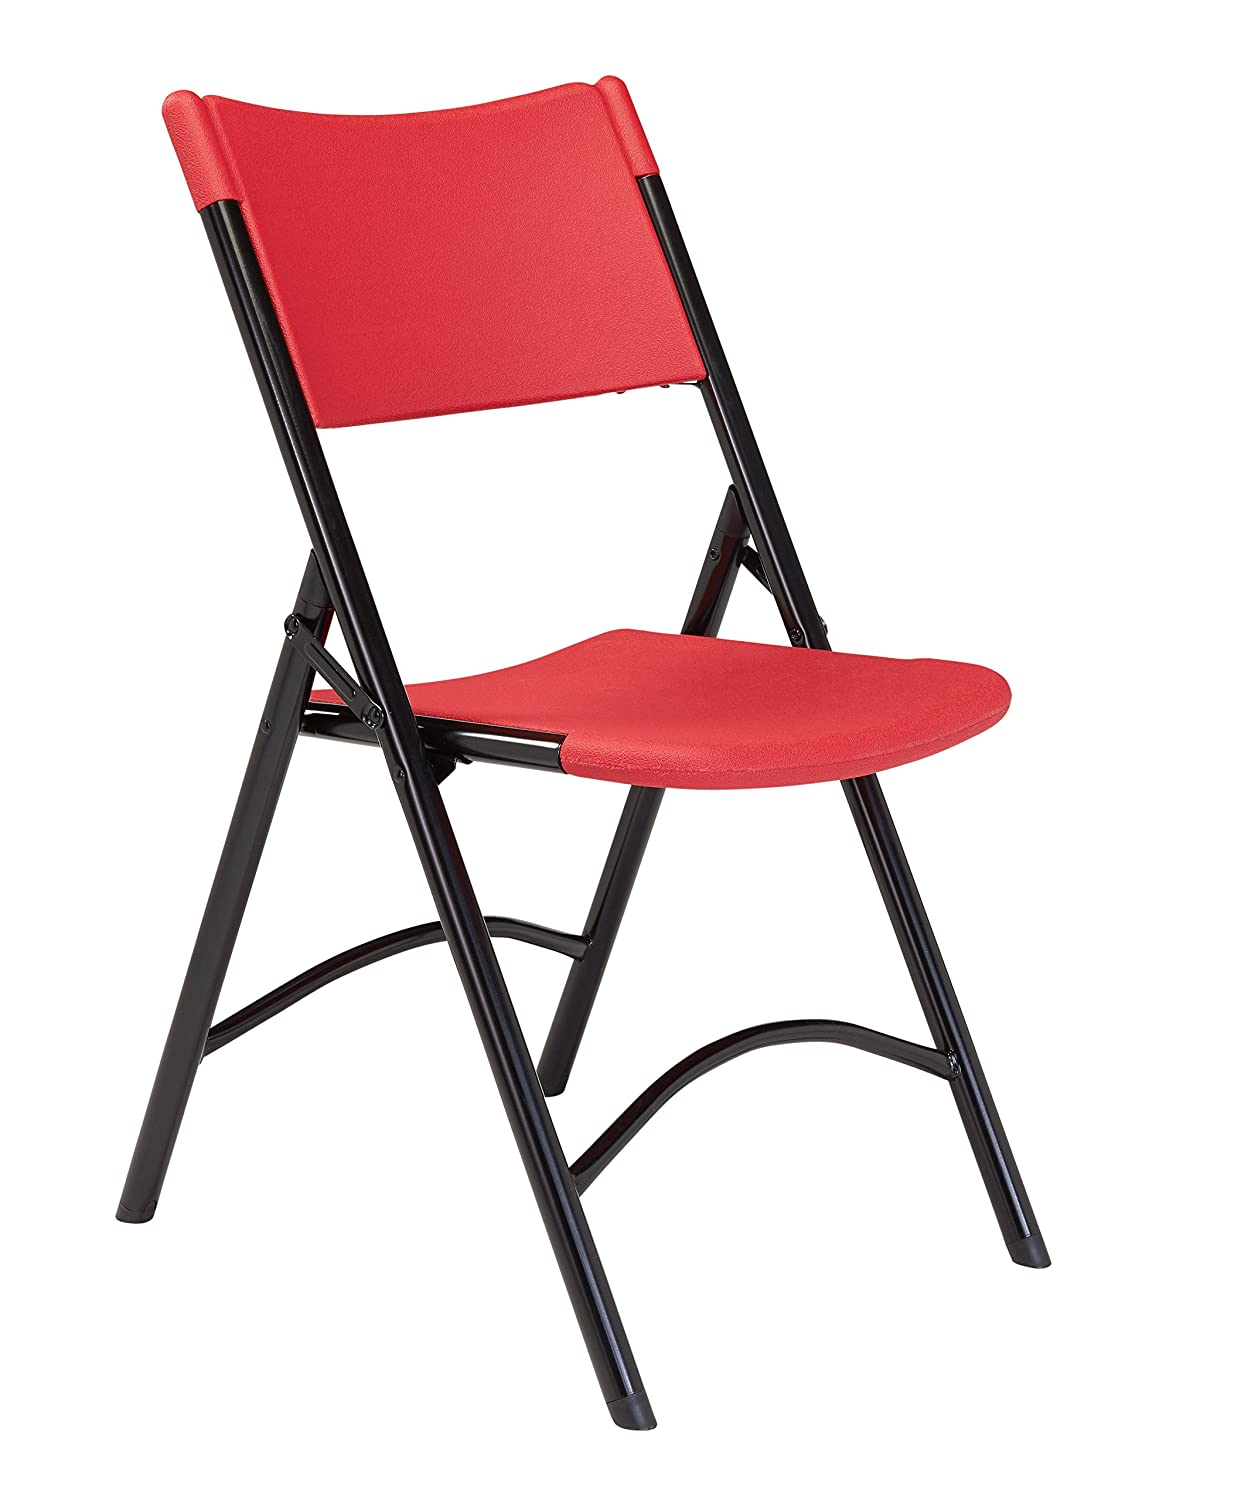 National Public Seating 600 Series Steel Frame Blow Molded Resin Plastic Seat and Back Folding Chair with Double Brace, 300 lbs Capacity, Red Black Carton of 4